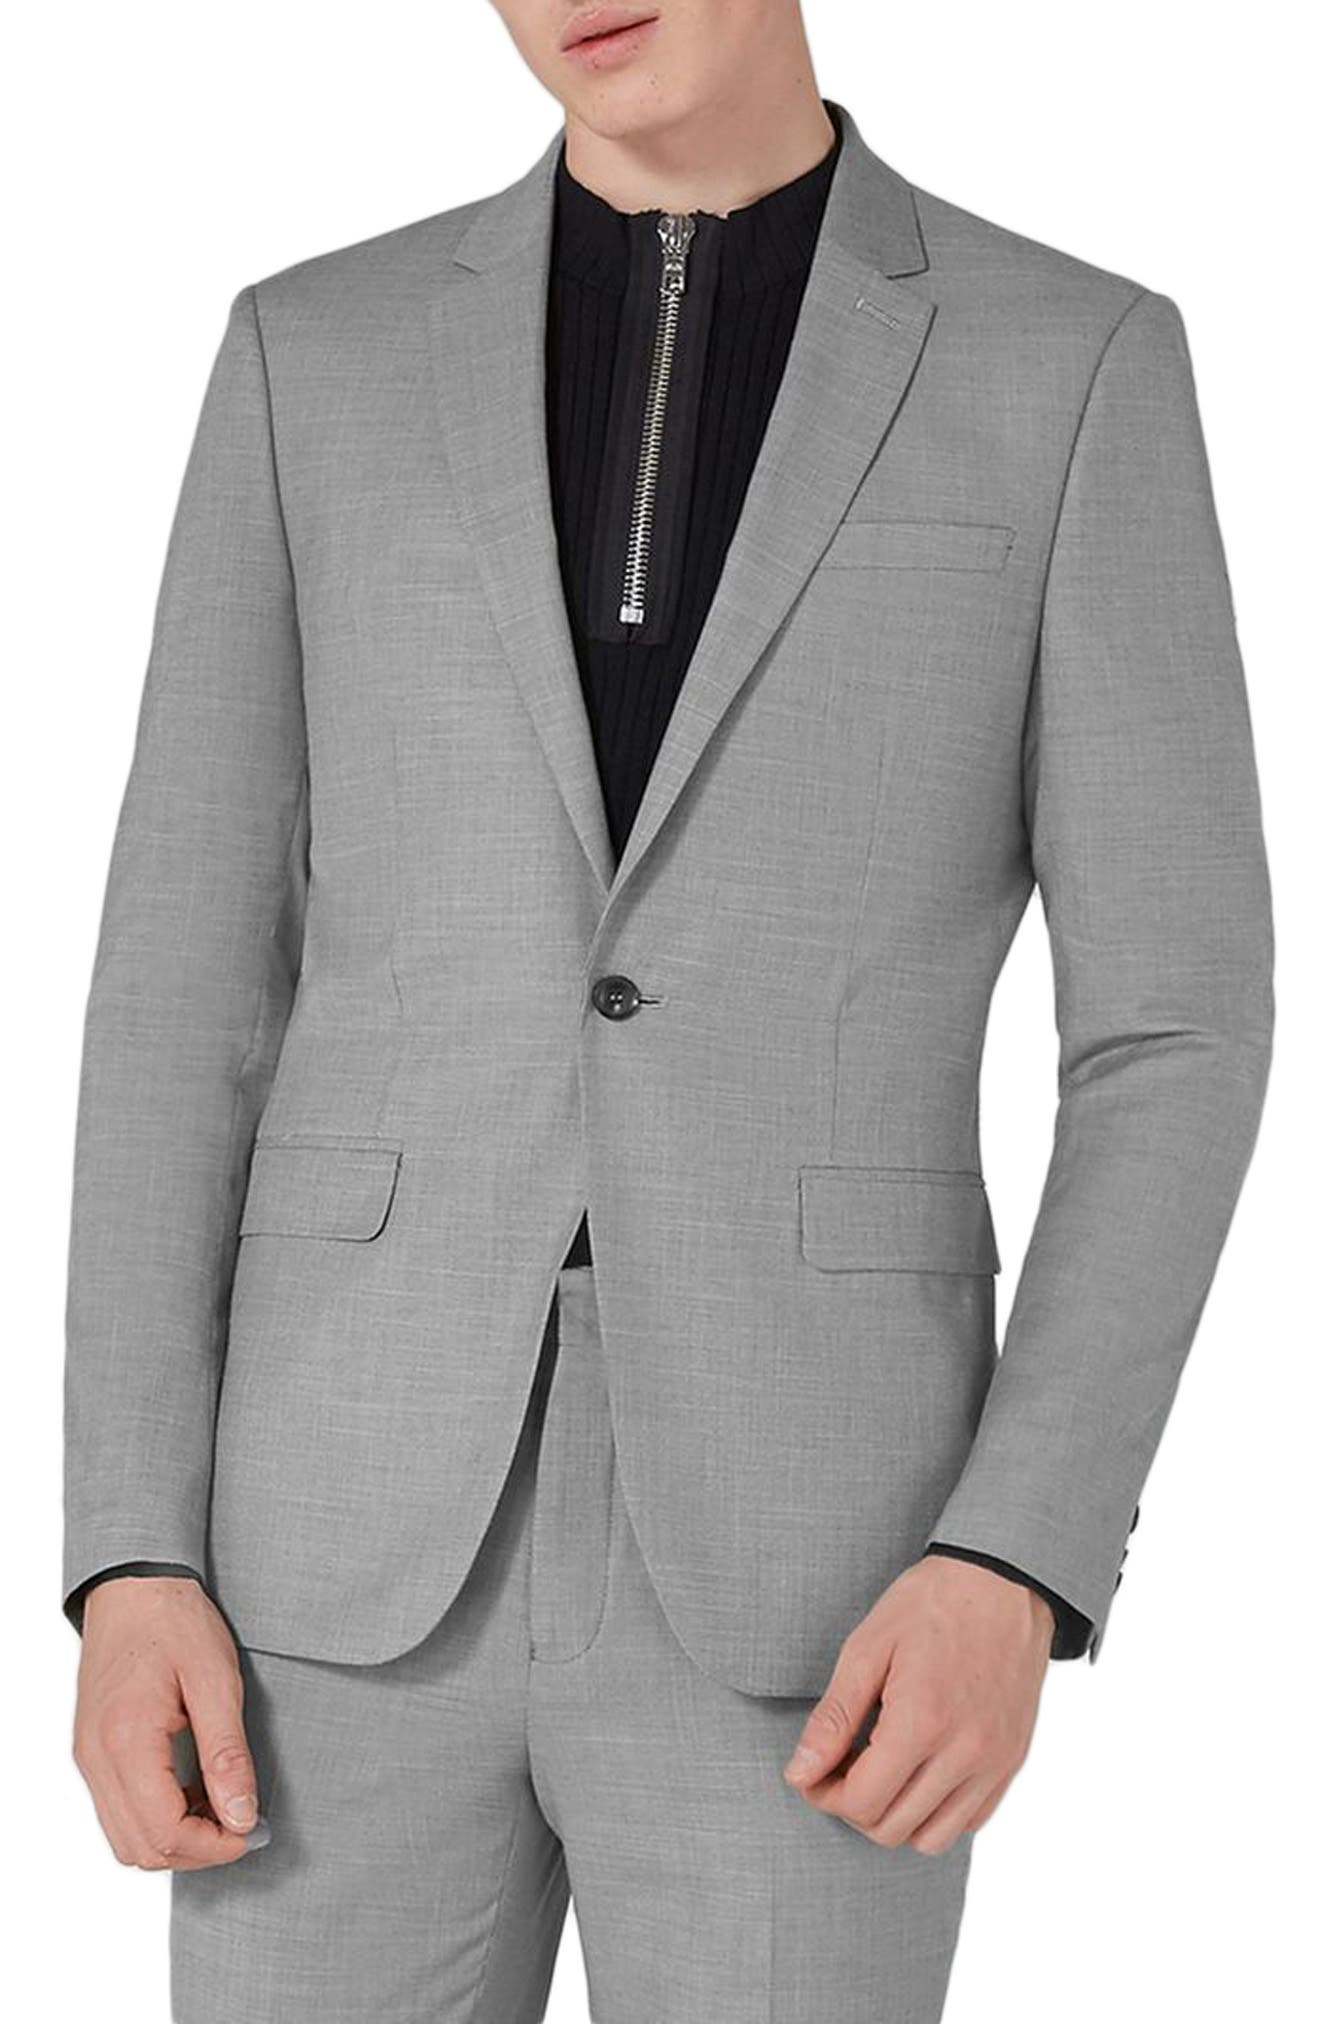 Skinny Fit Suit Jacket,                             Main thumbnail 1, color,                             Grey